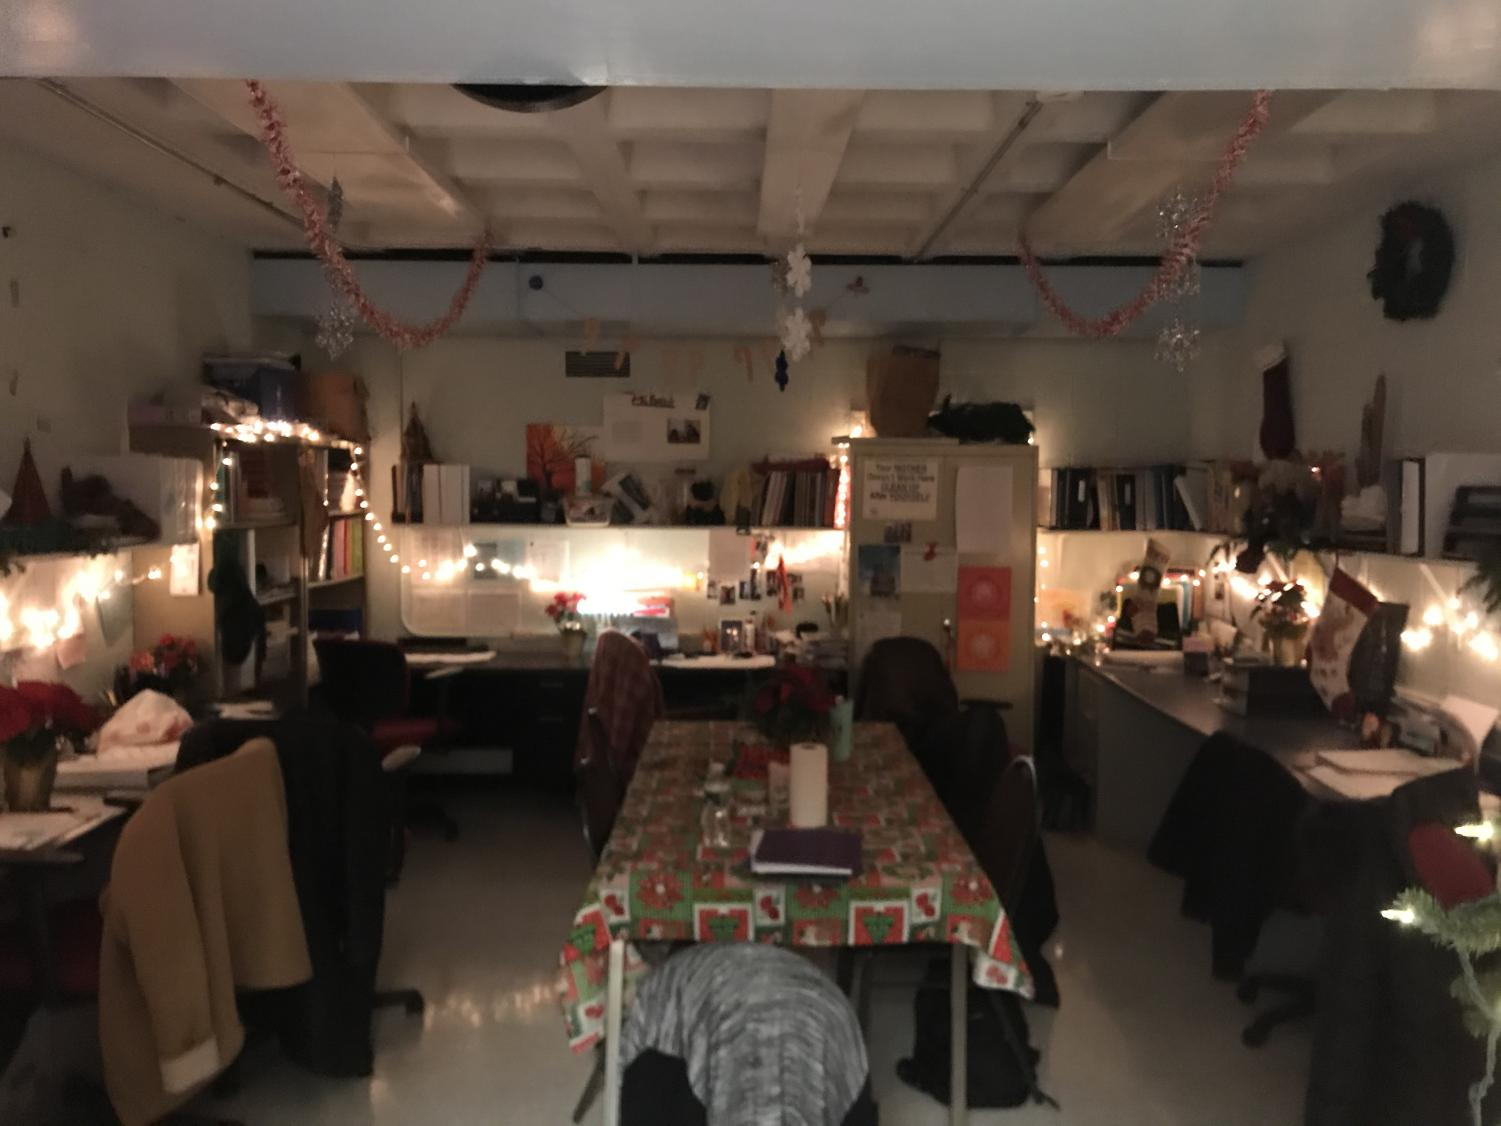 The+inside+of+the+Special+Education+office%2C+lights+had+been+hung+under+the+bookshelf+for+more+holiday+spirit.